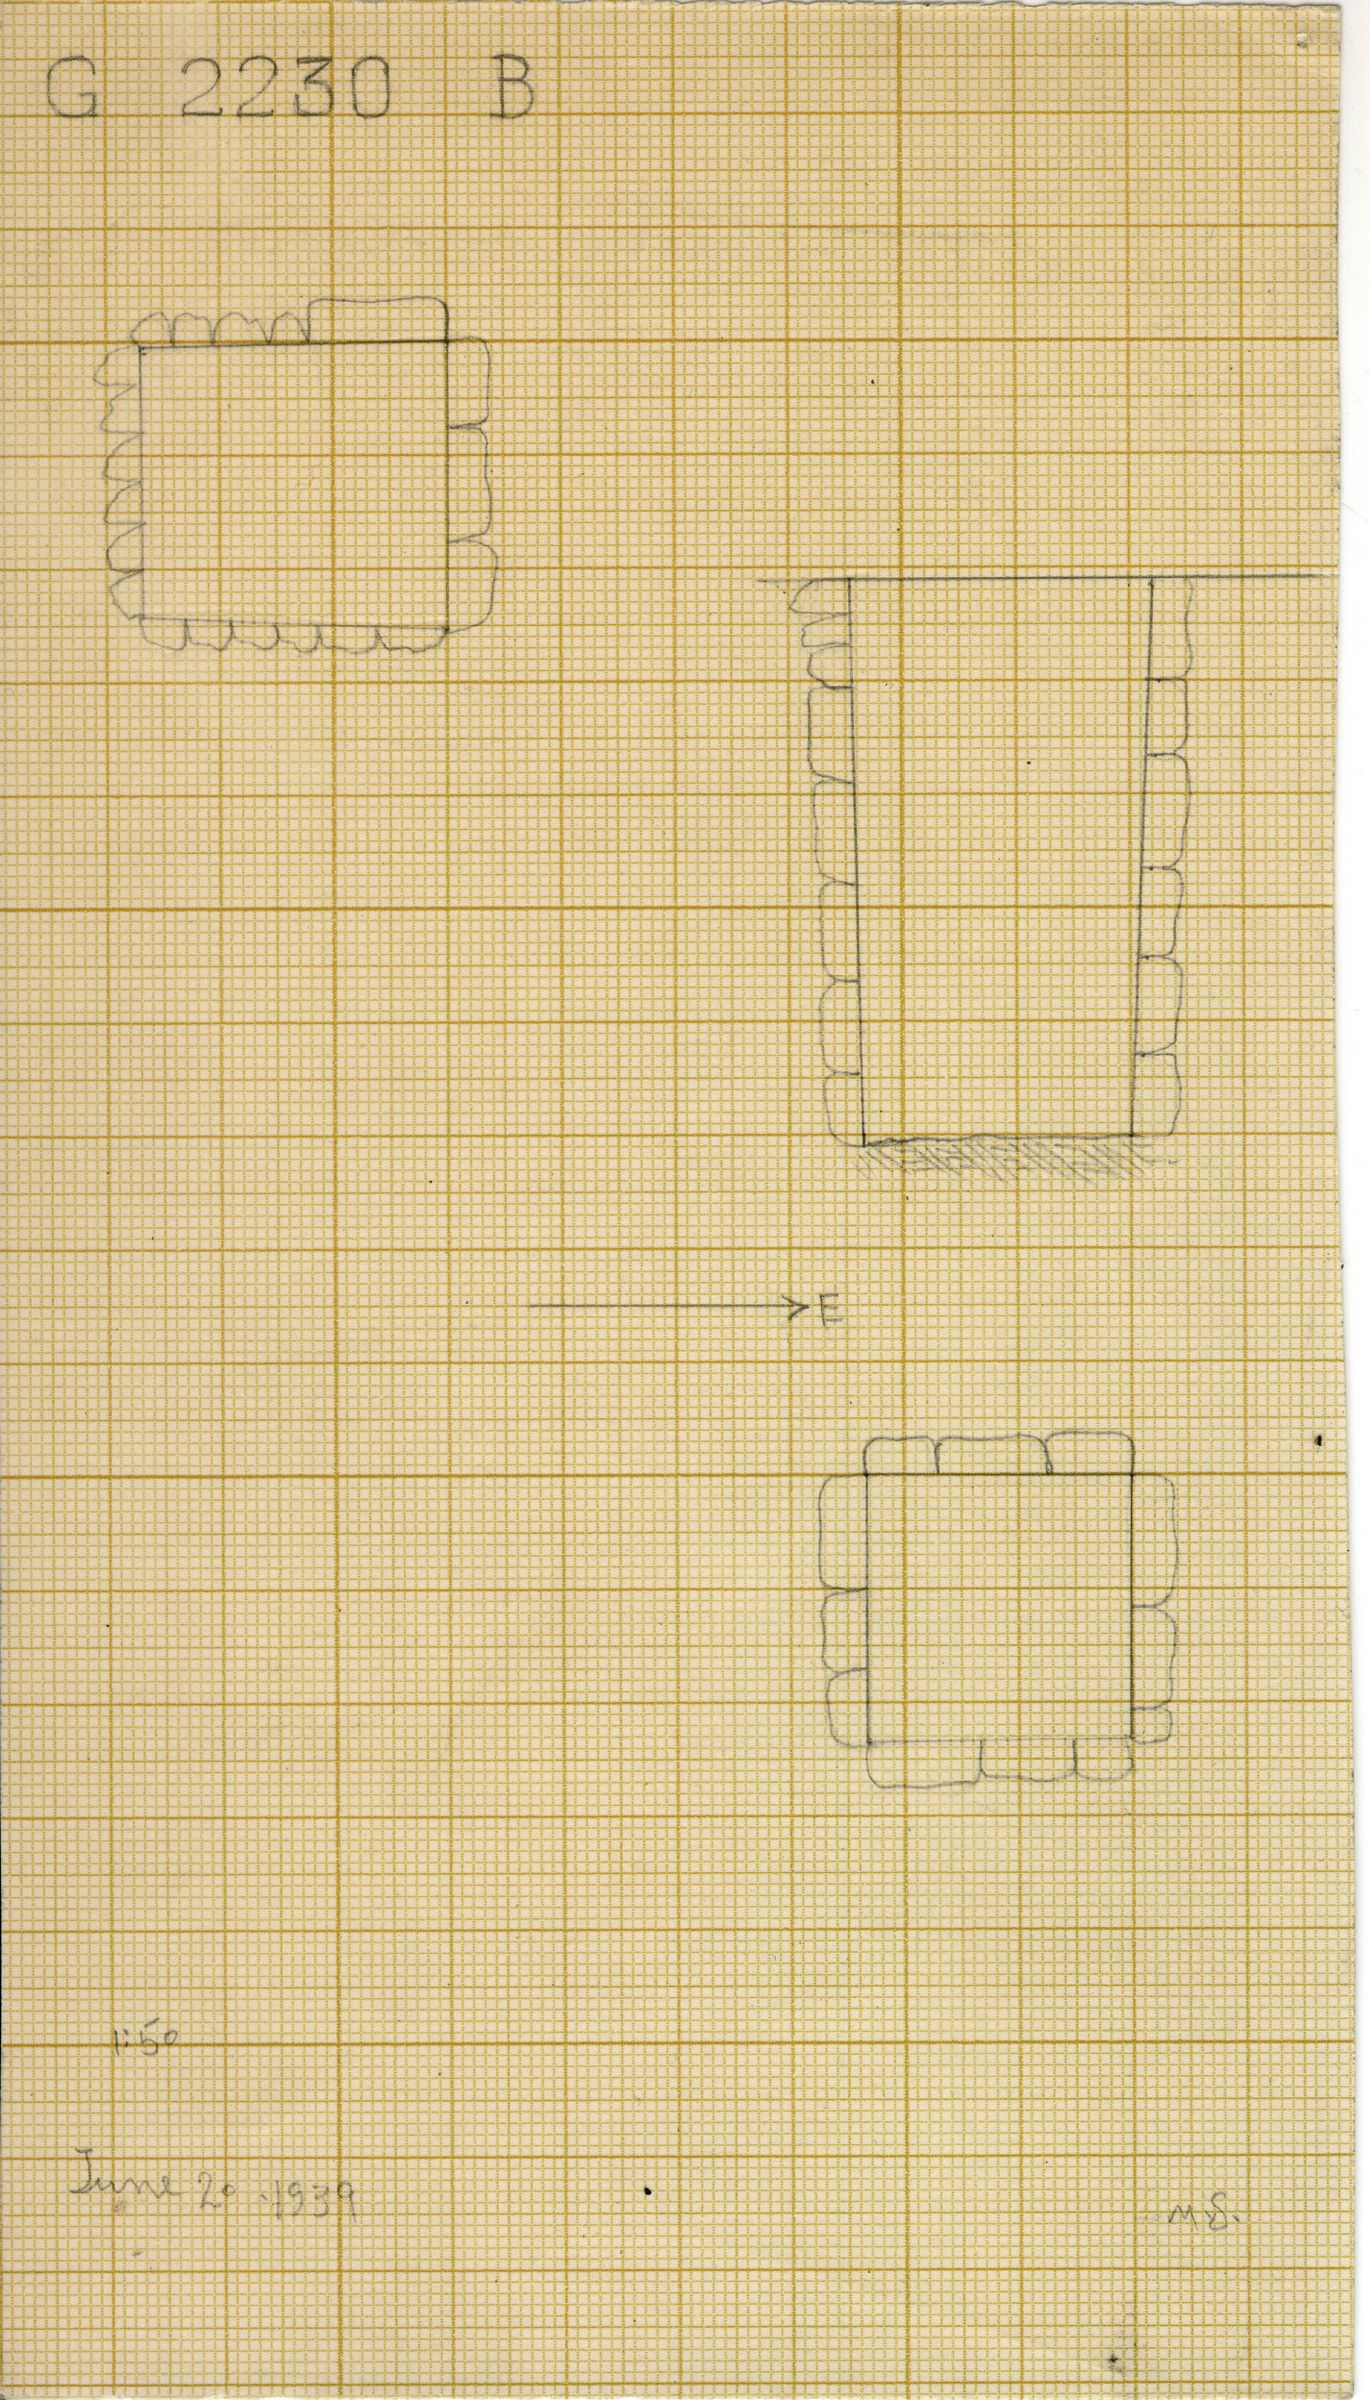 Maps and plans: G 2230+2231: G 2230, Shaft B